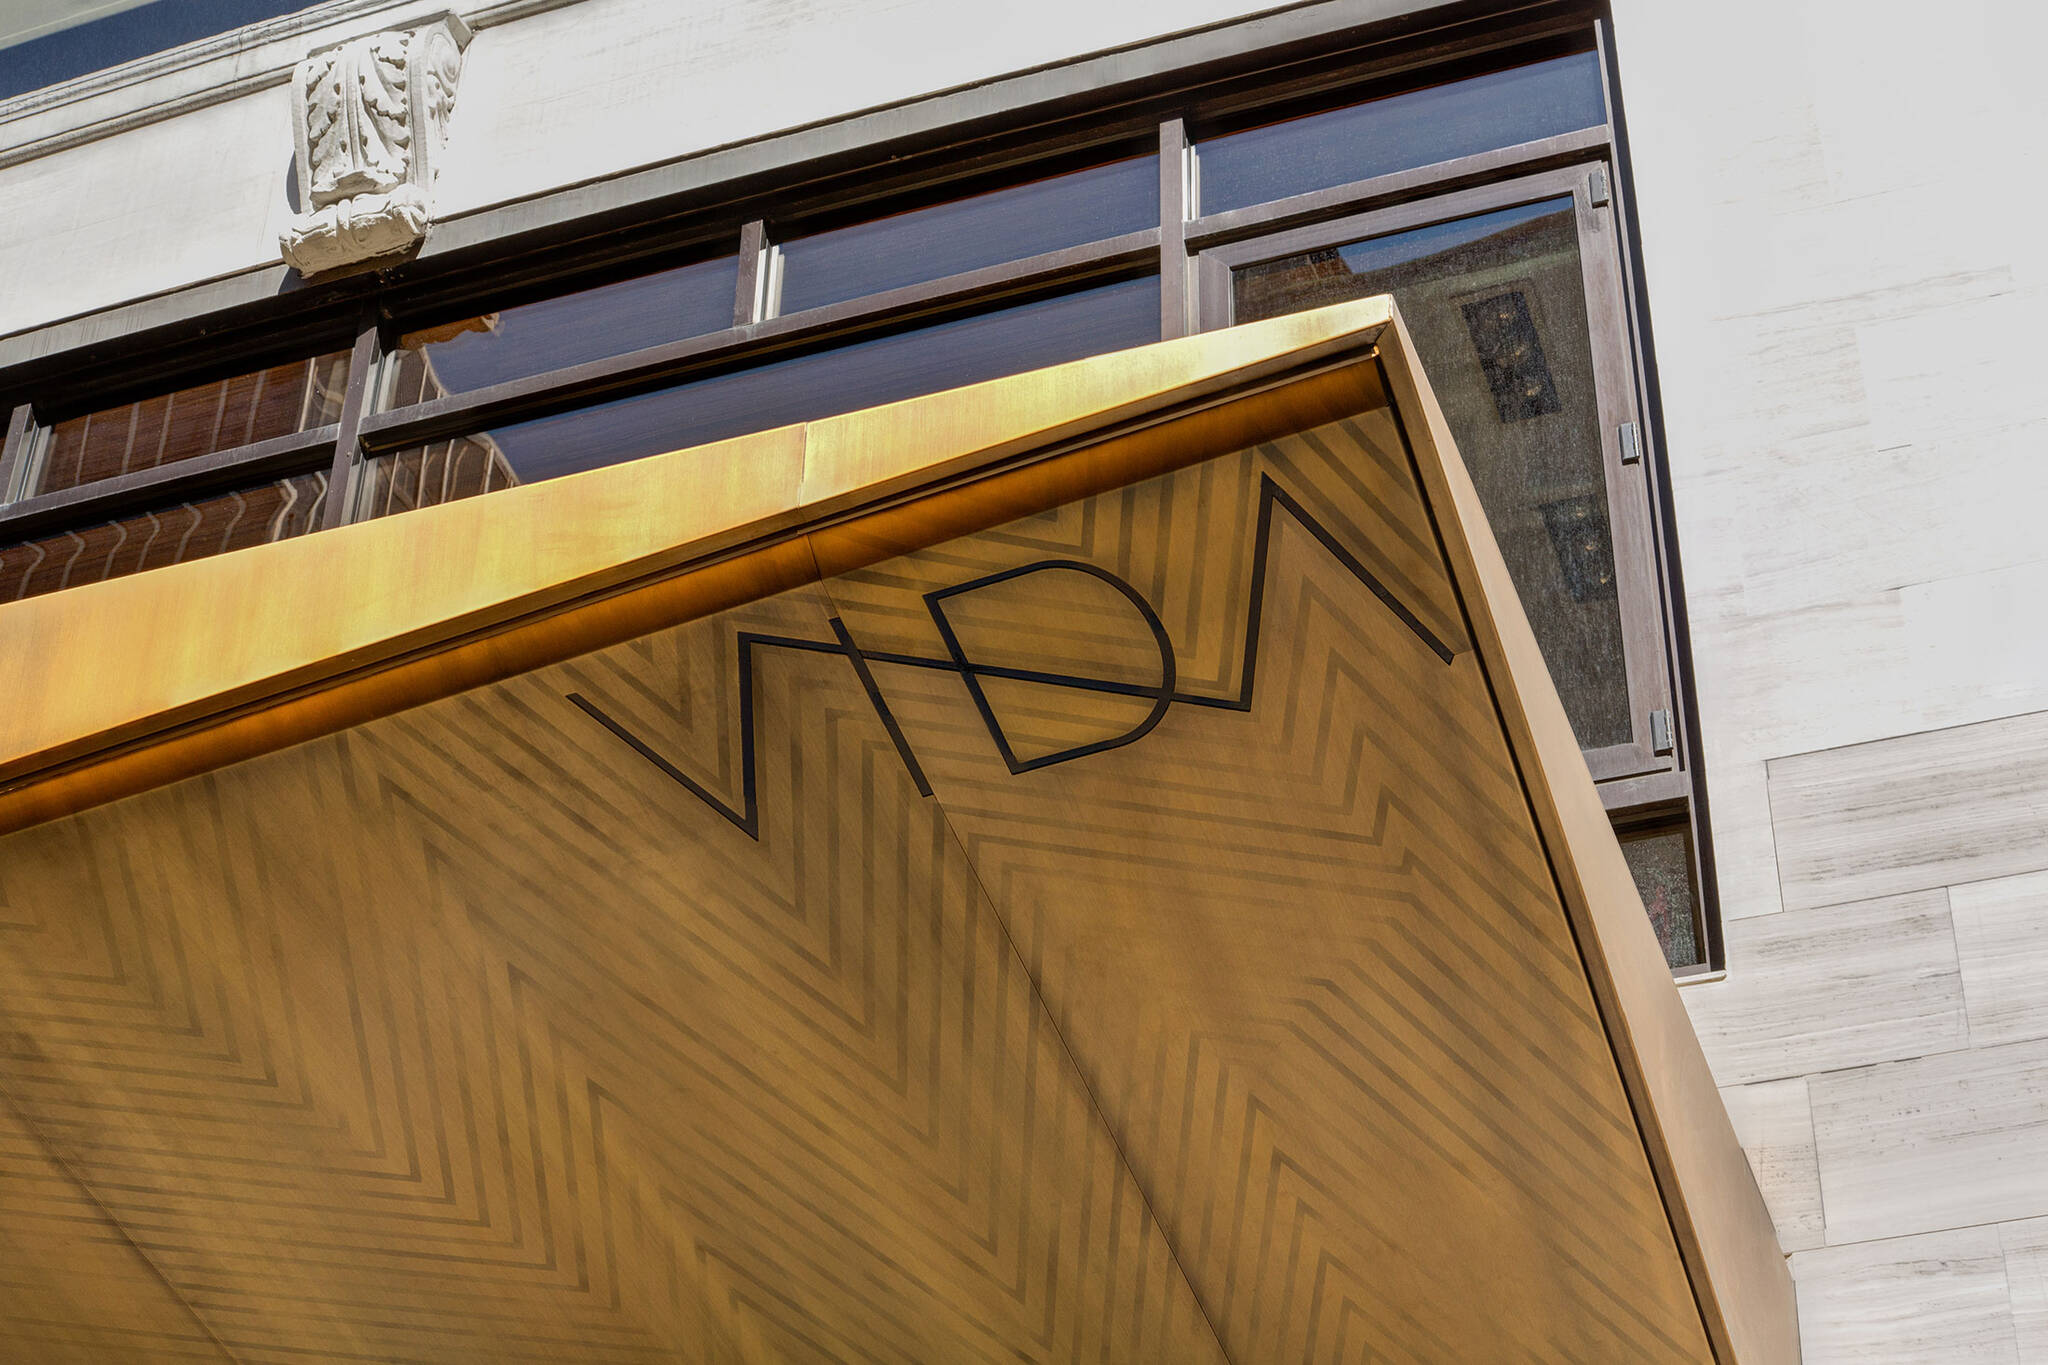 Branding on the corner of the Vida Shoes International canopy project for the shop located at 29 West 56th Street in Midtown, New York City designed by the architecture studio Danny Forster & Architecture